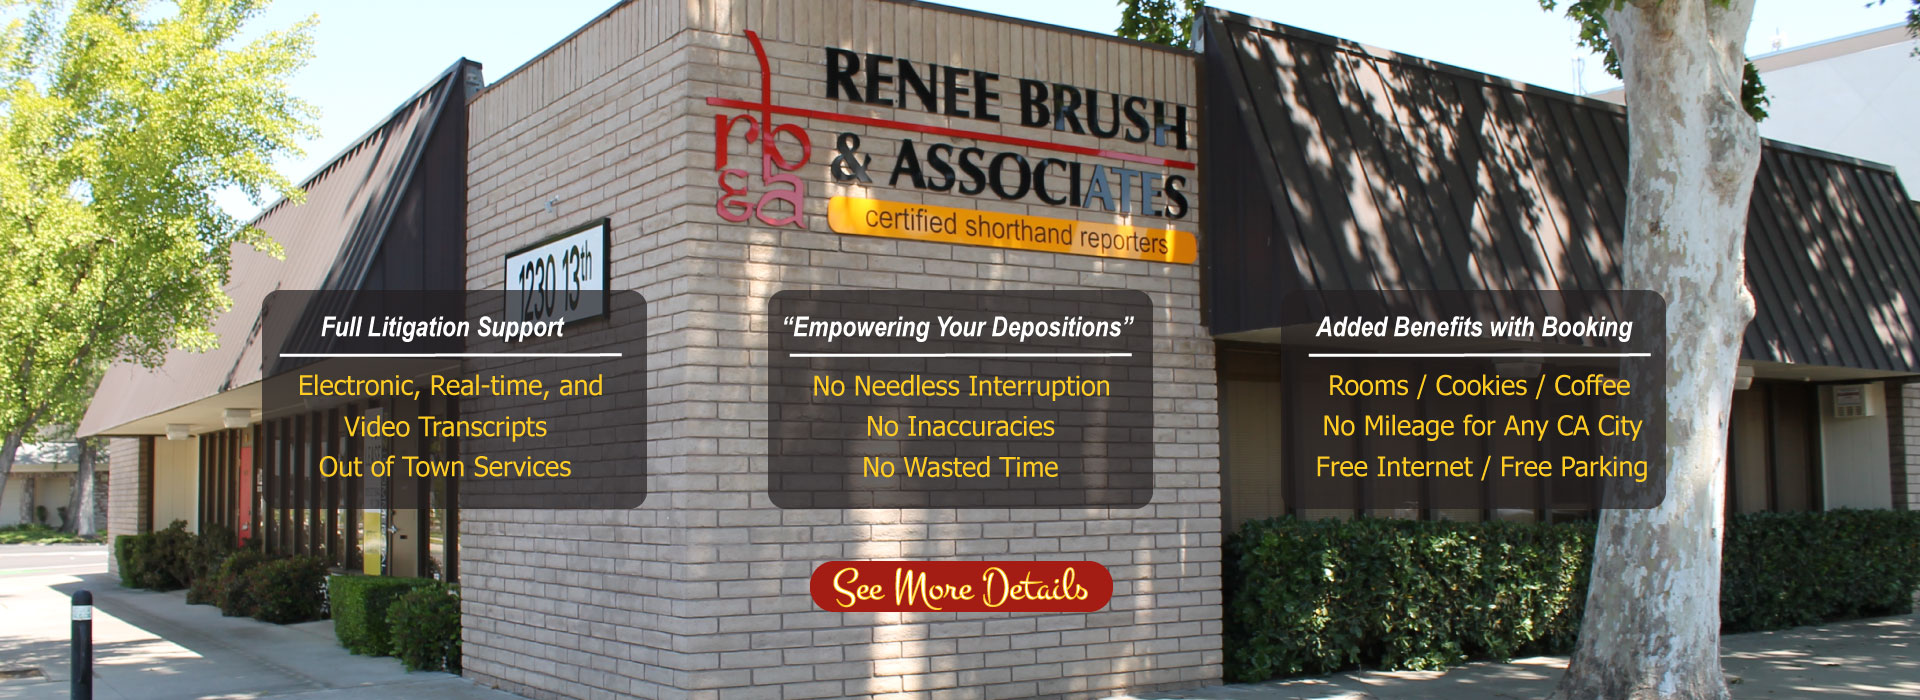 renee-brush-court-reporters-modesto-ca